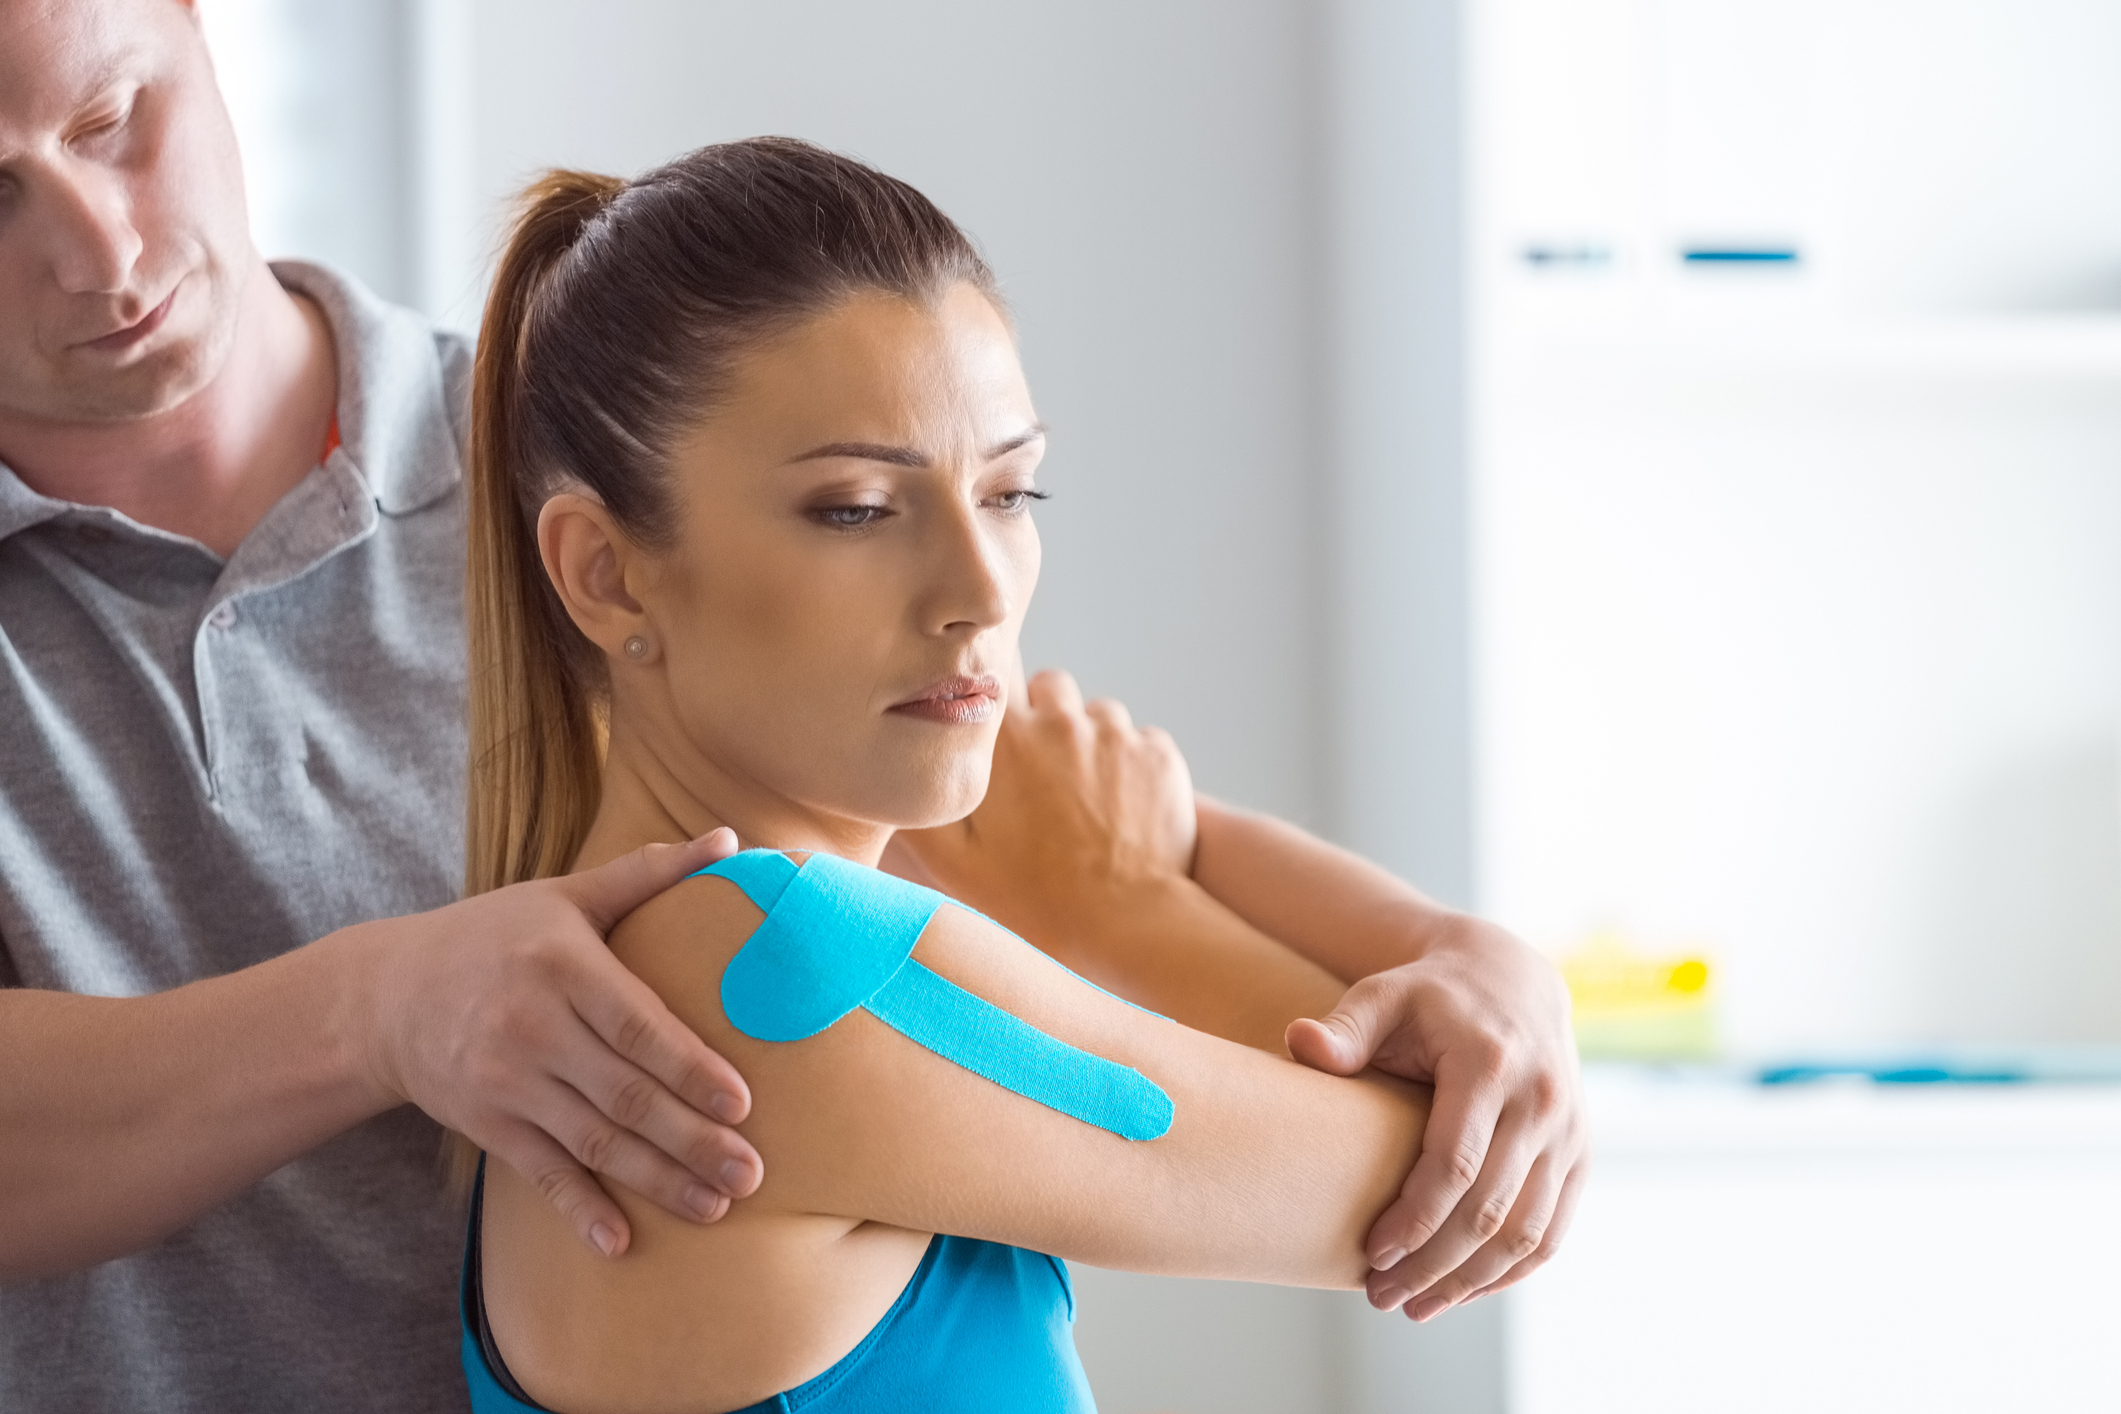 Physiotherapist massaging young woman